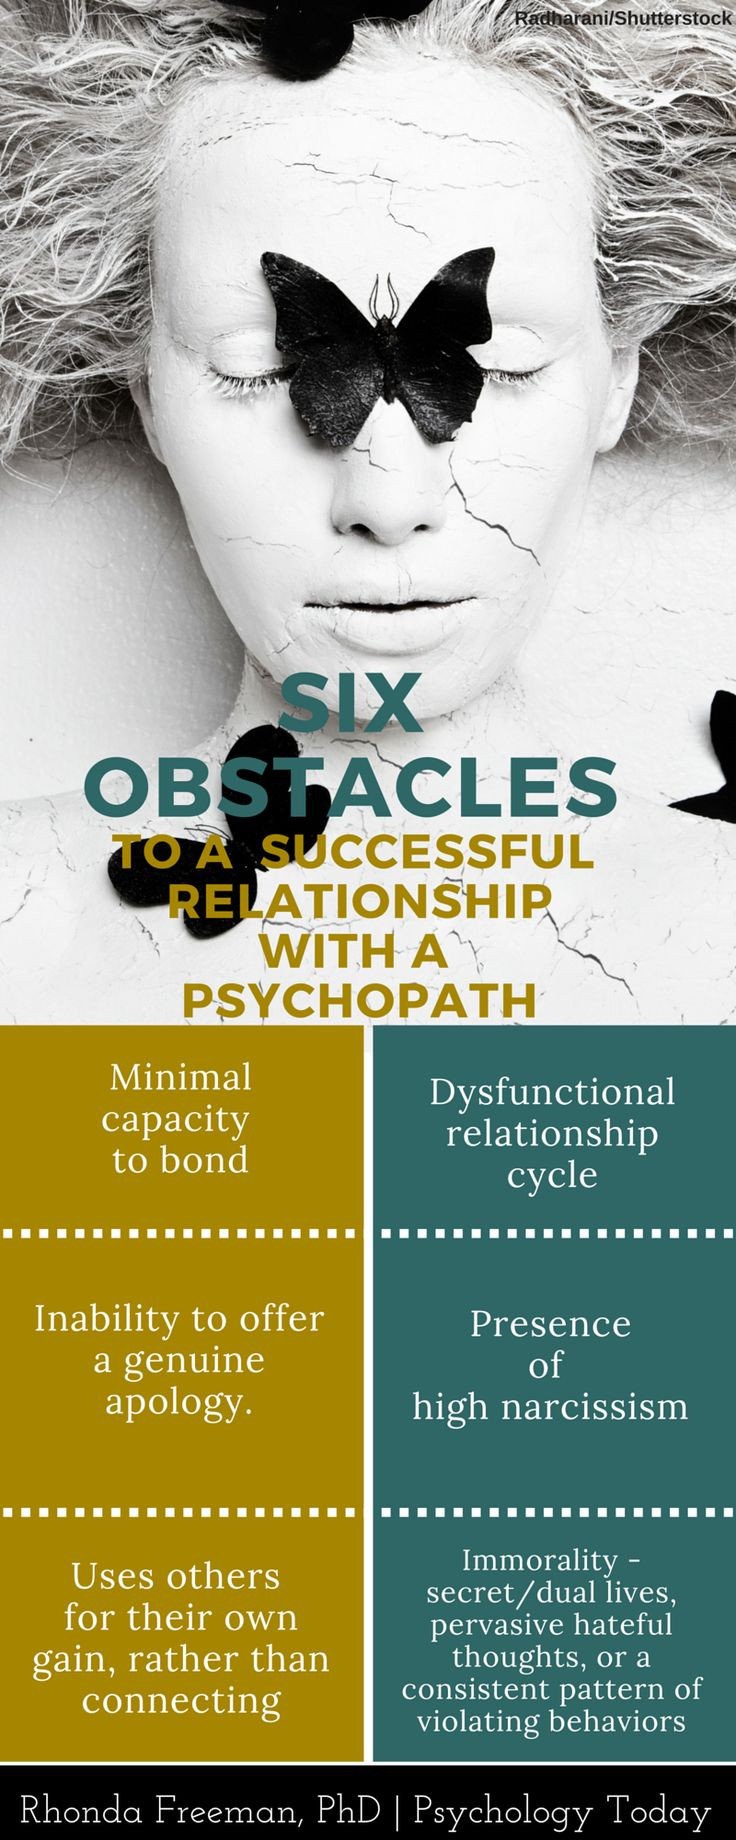 6 Obstacles to a successful relationship with a psychopath